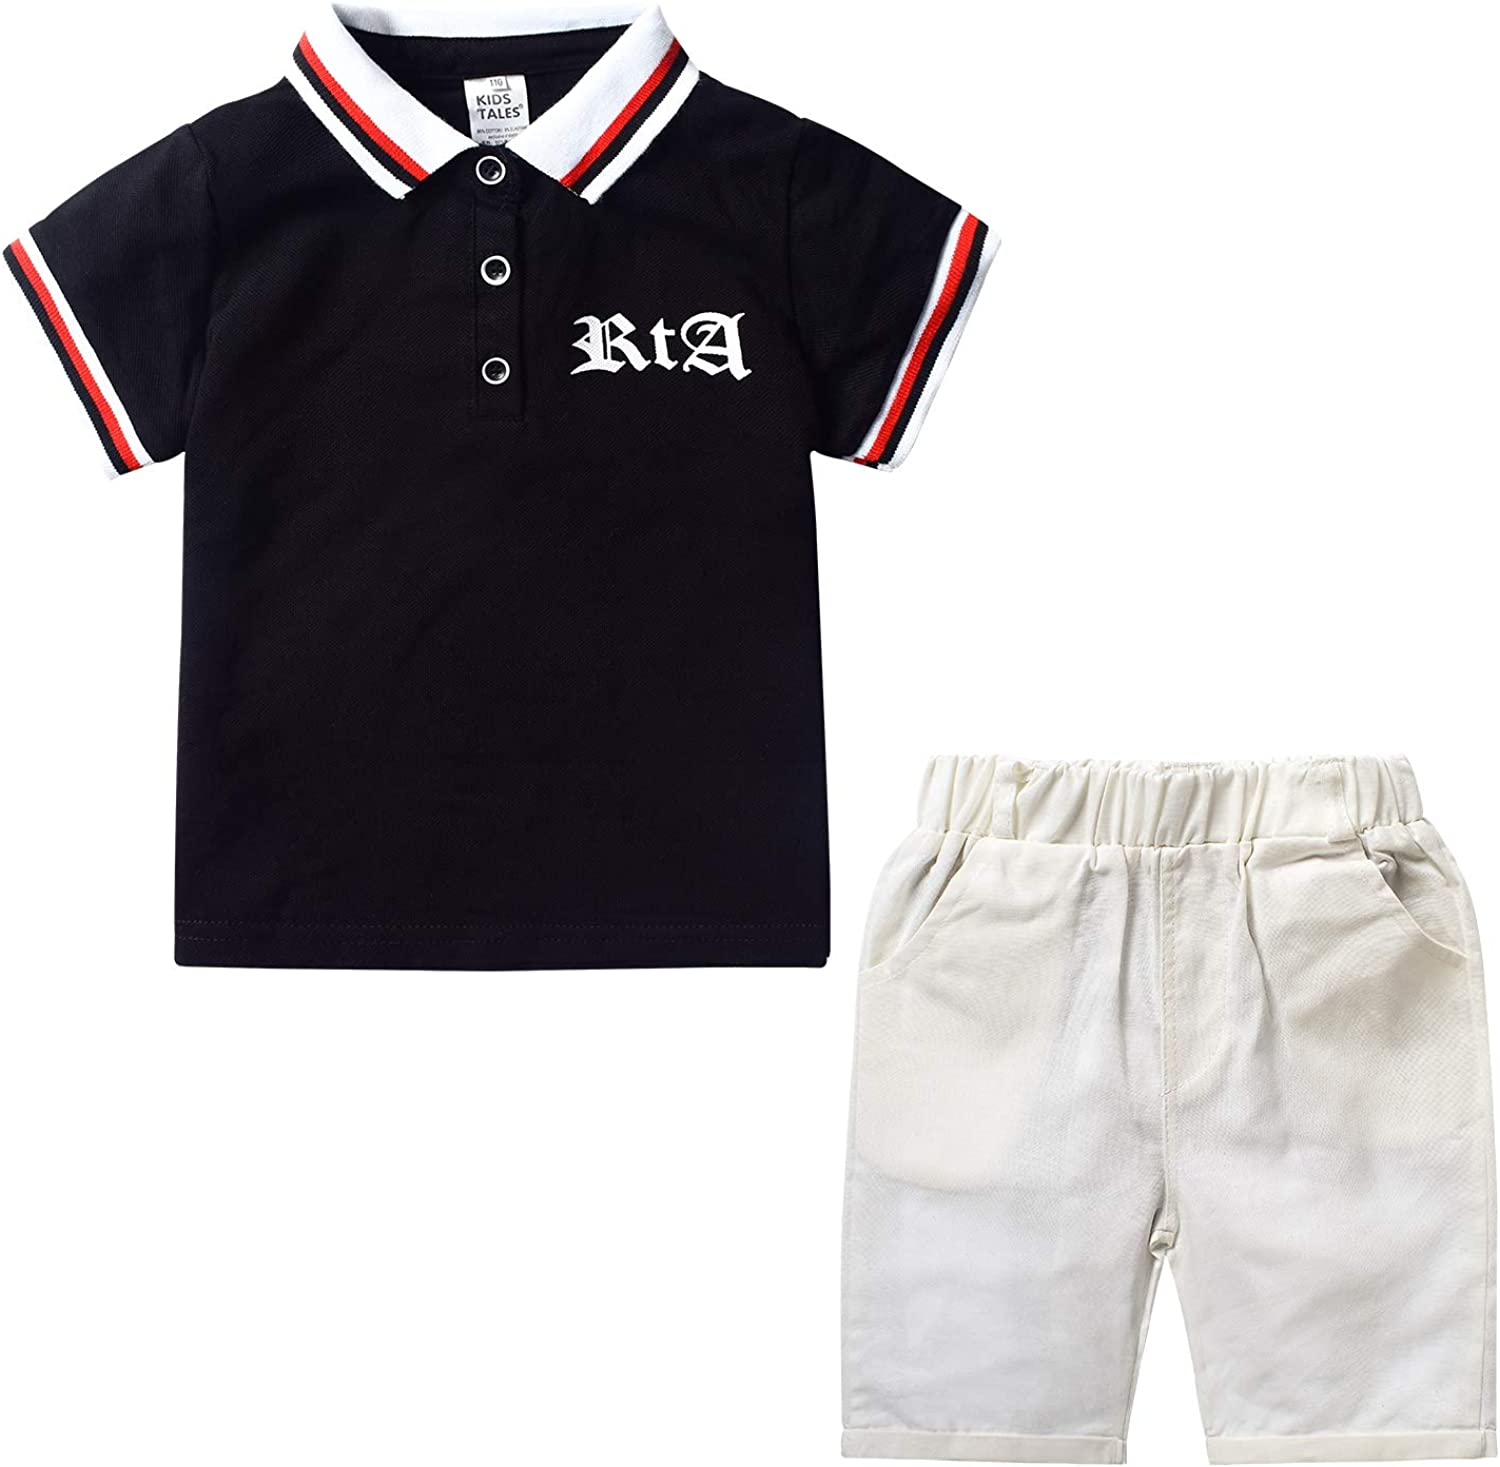 Nwada Boys Clothes Kids Shorts and Polo Shirt Sets Toddler Tshirt and Pants Suit Summer Sport Clothing Children Outfits